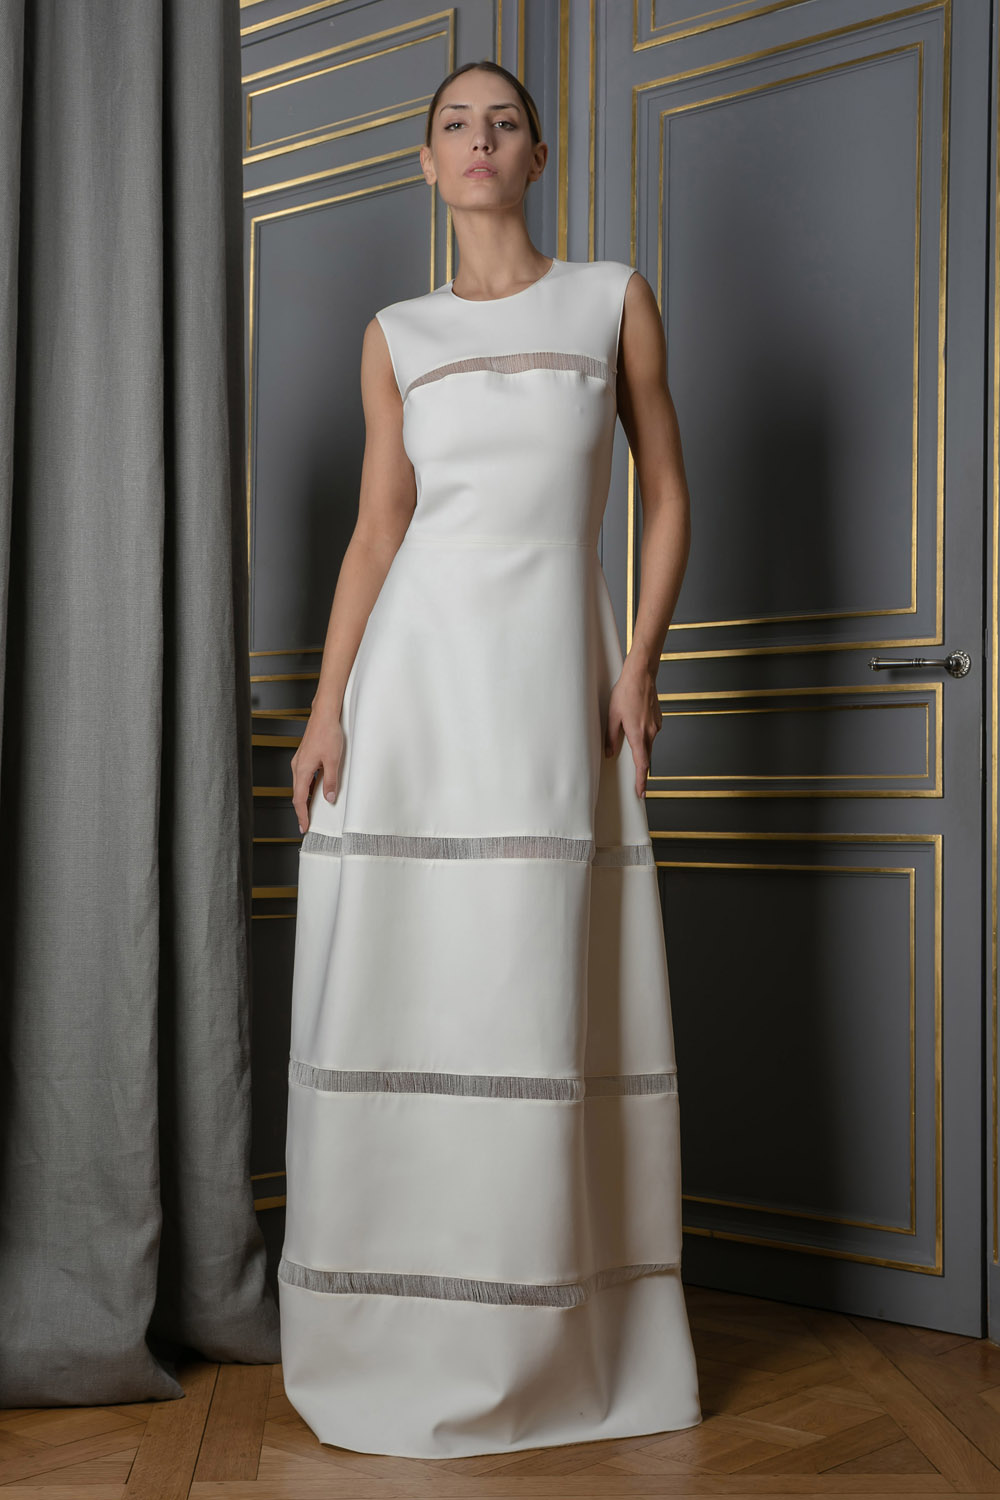 A-line ivory gown with sheer detailing